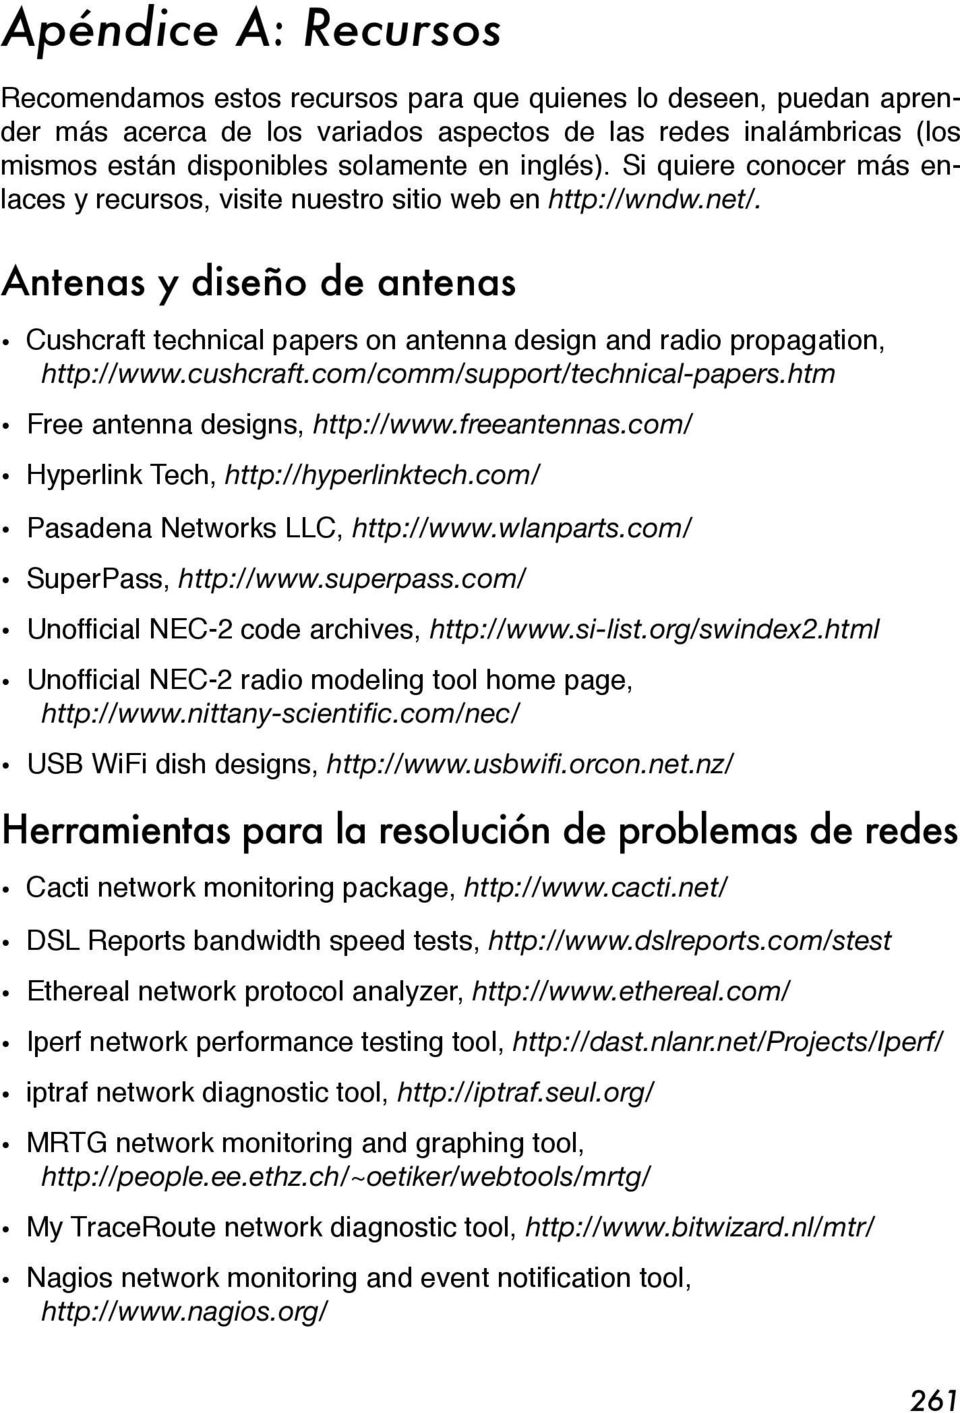 Antenas y diseño de antenas Cushcraft technical papers on antenna design and radio propagation, http://www.cushcraft.com/comm/support/technical-papers.htm Free antenna designs, http://www.